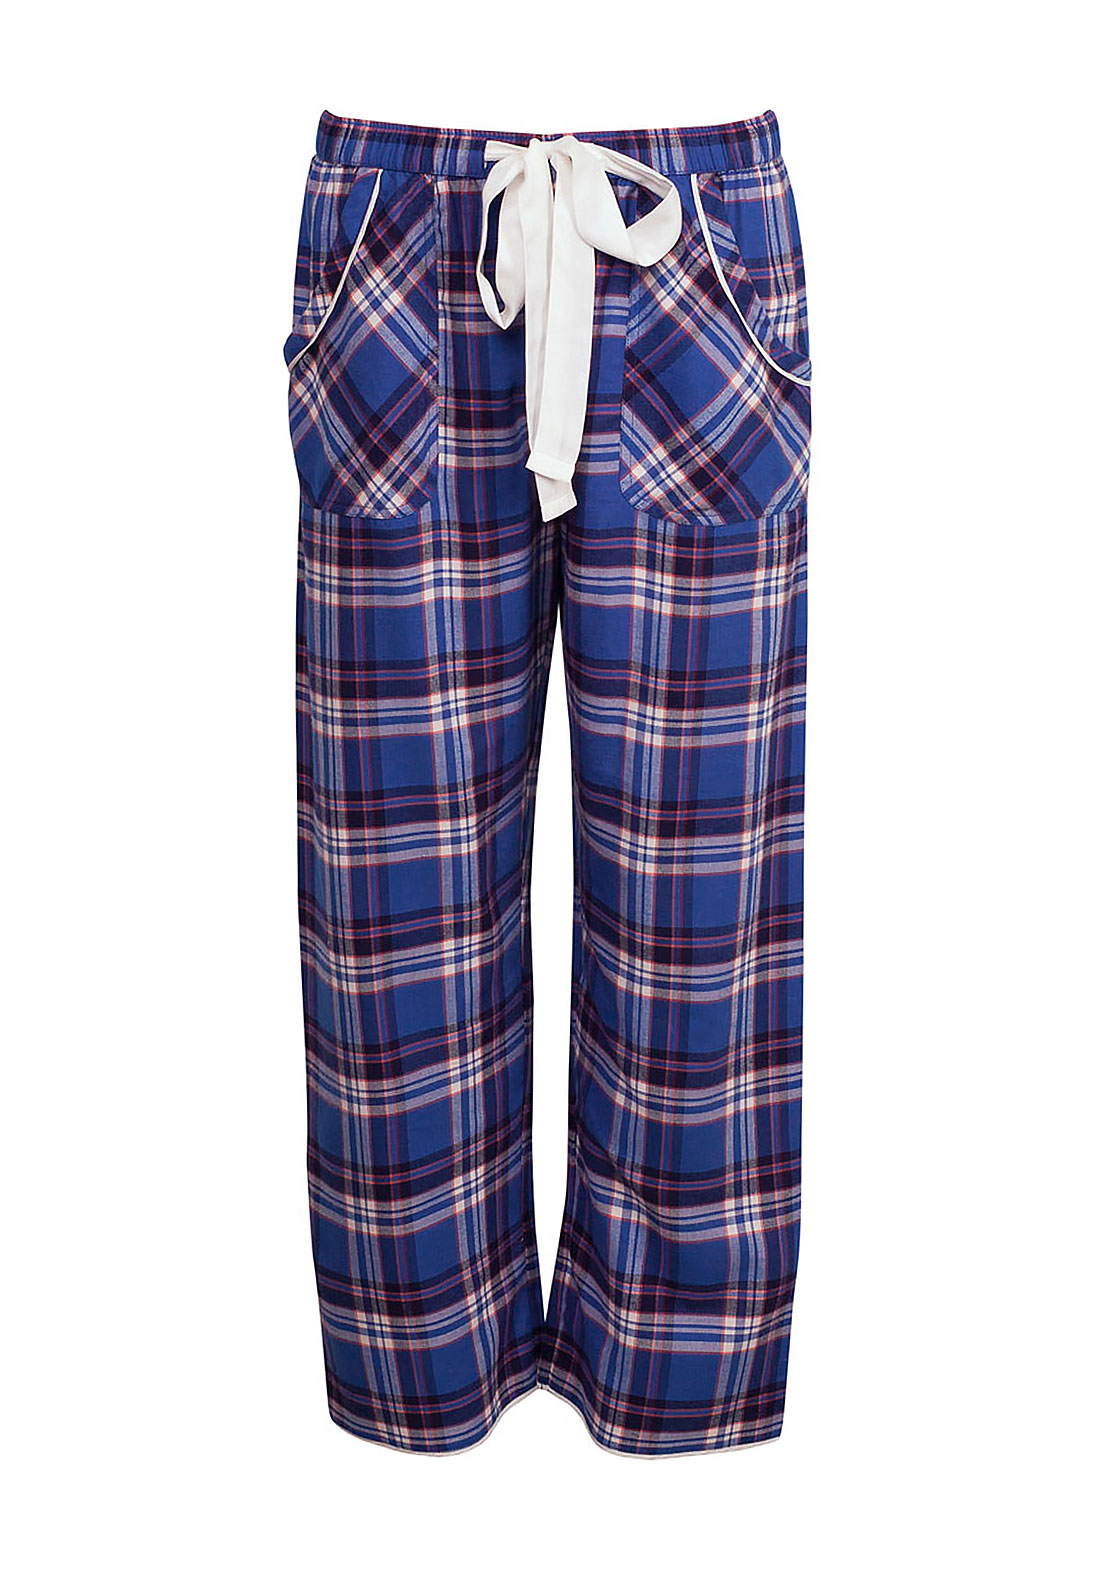 Cyberjammies Winter Flower Checked Pyjama Bottoms, Dark Blue